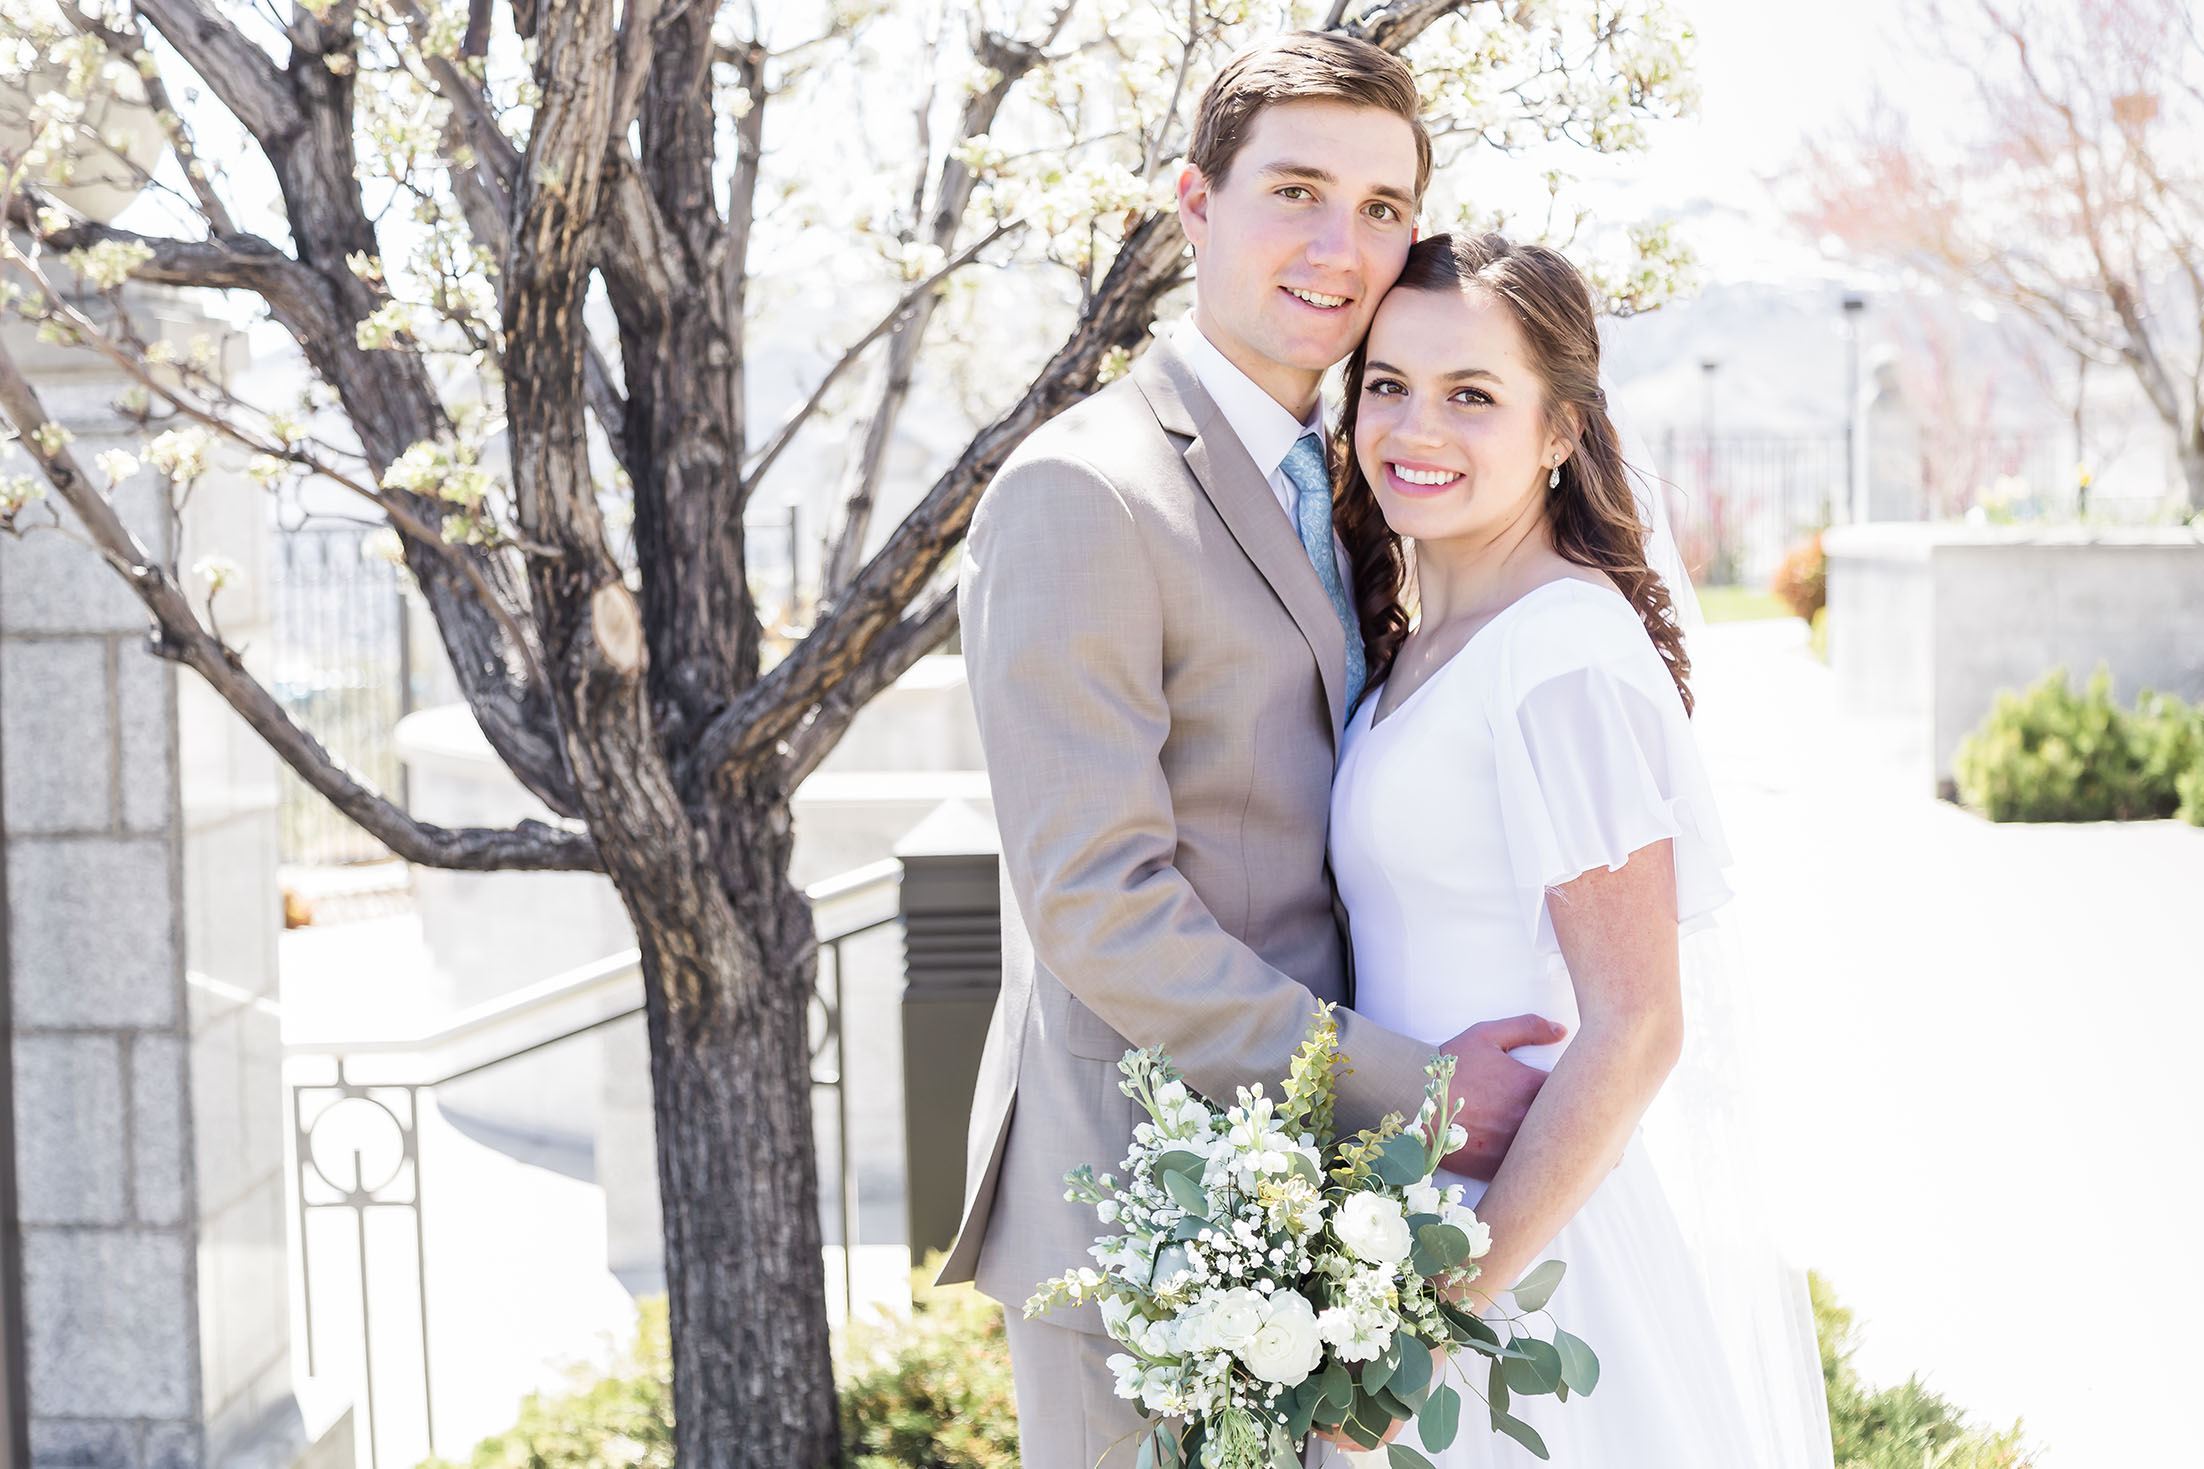 Reno LDS Temple wedding with Brigham and Sara